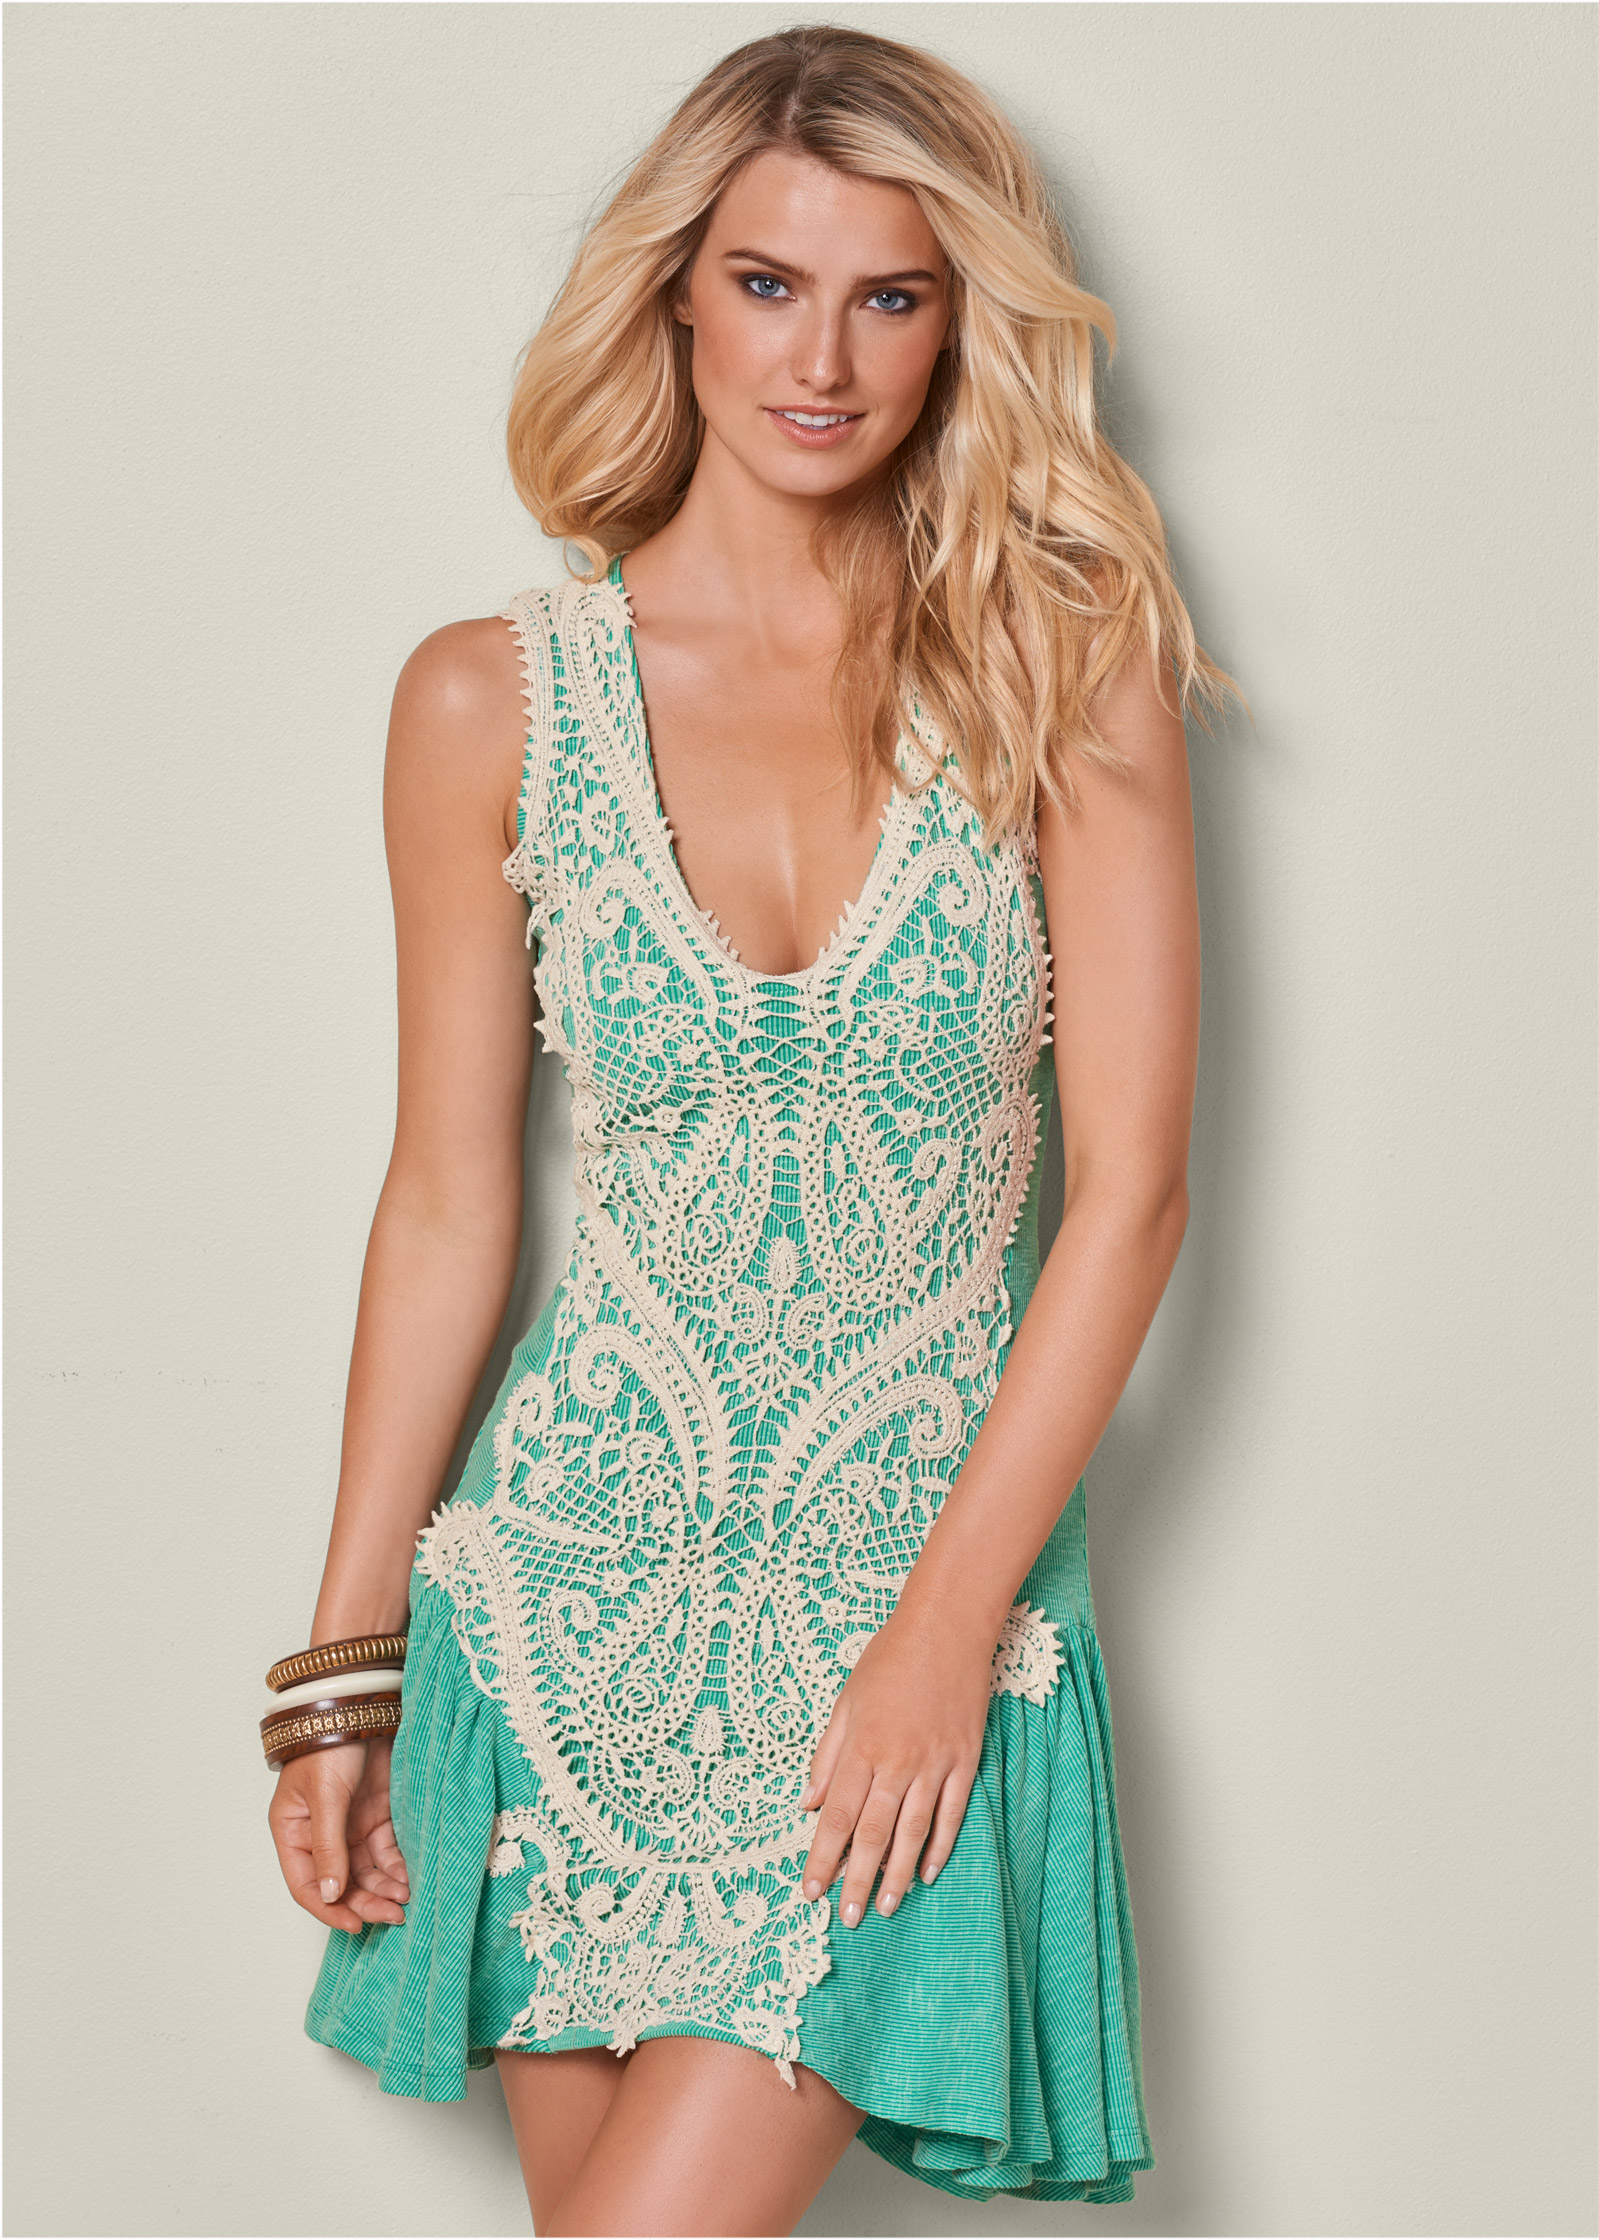 Turquoise Cocktail Dresses for Women